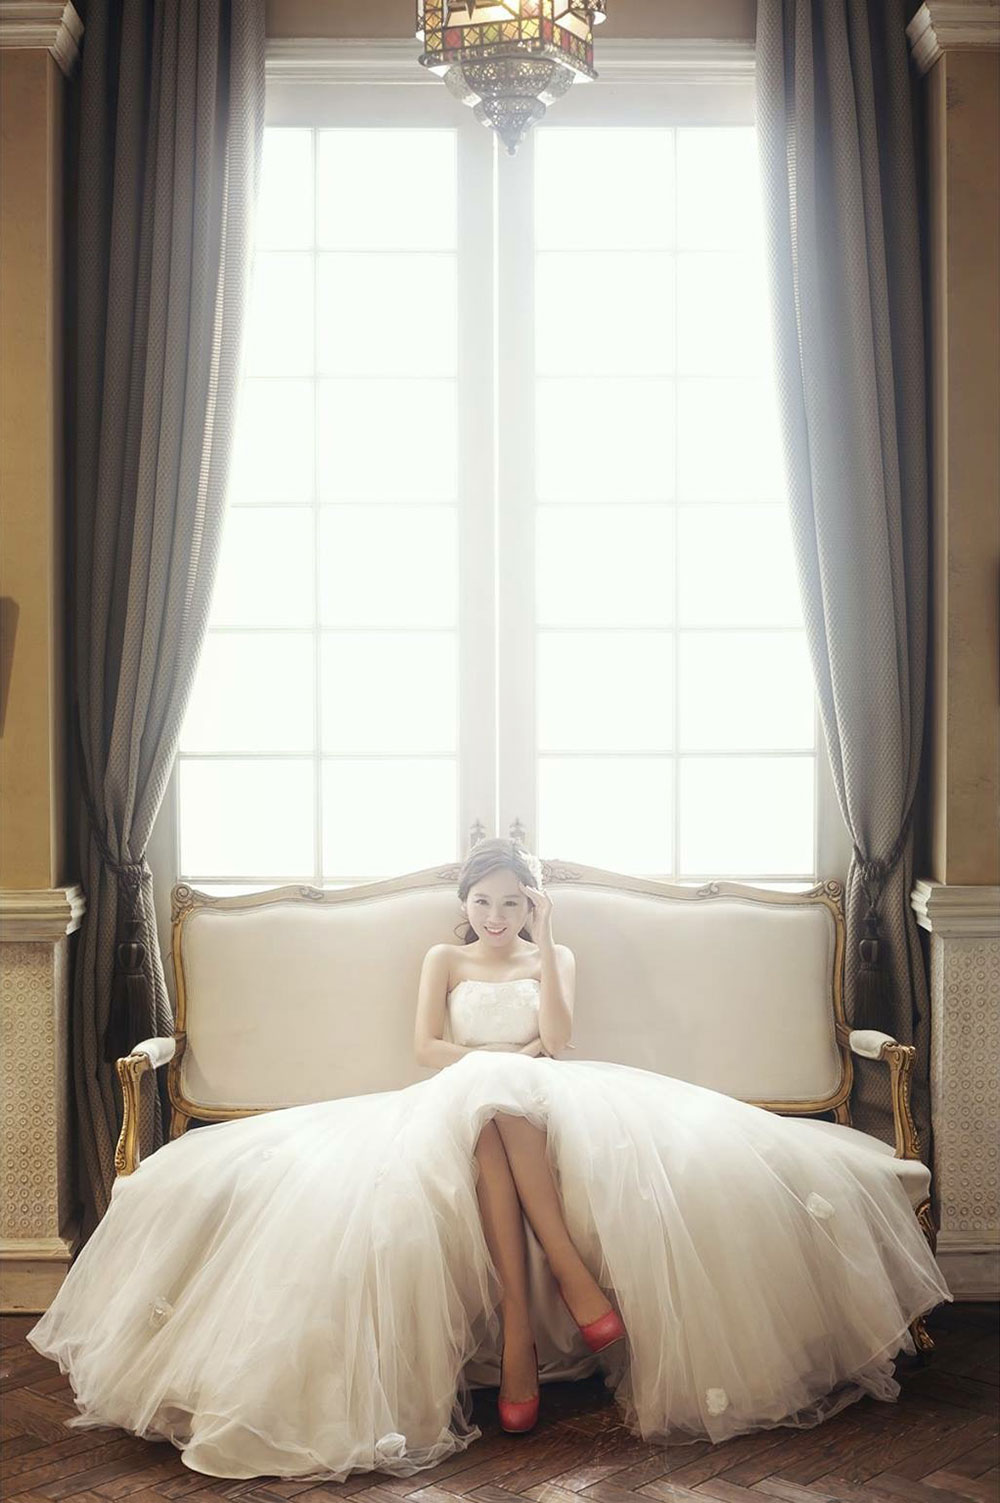 Photo by Door Studio Korea. /www.theweddingnotebook.com